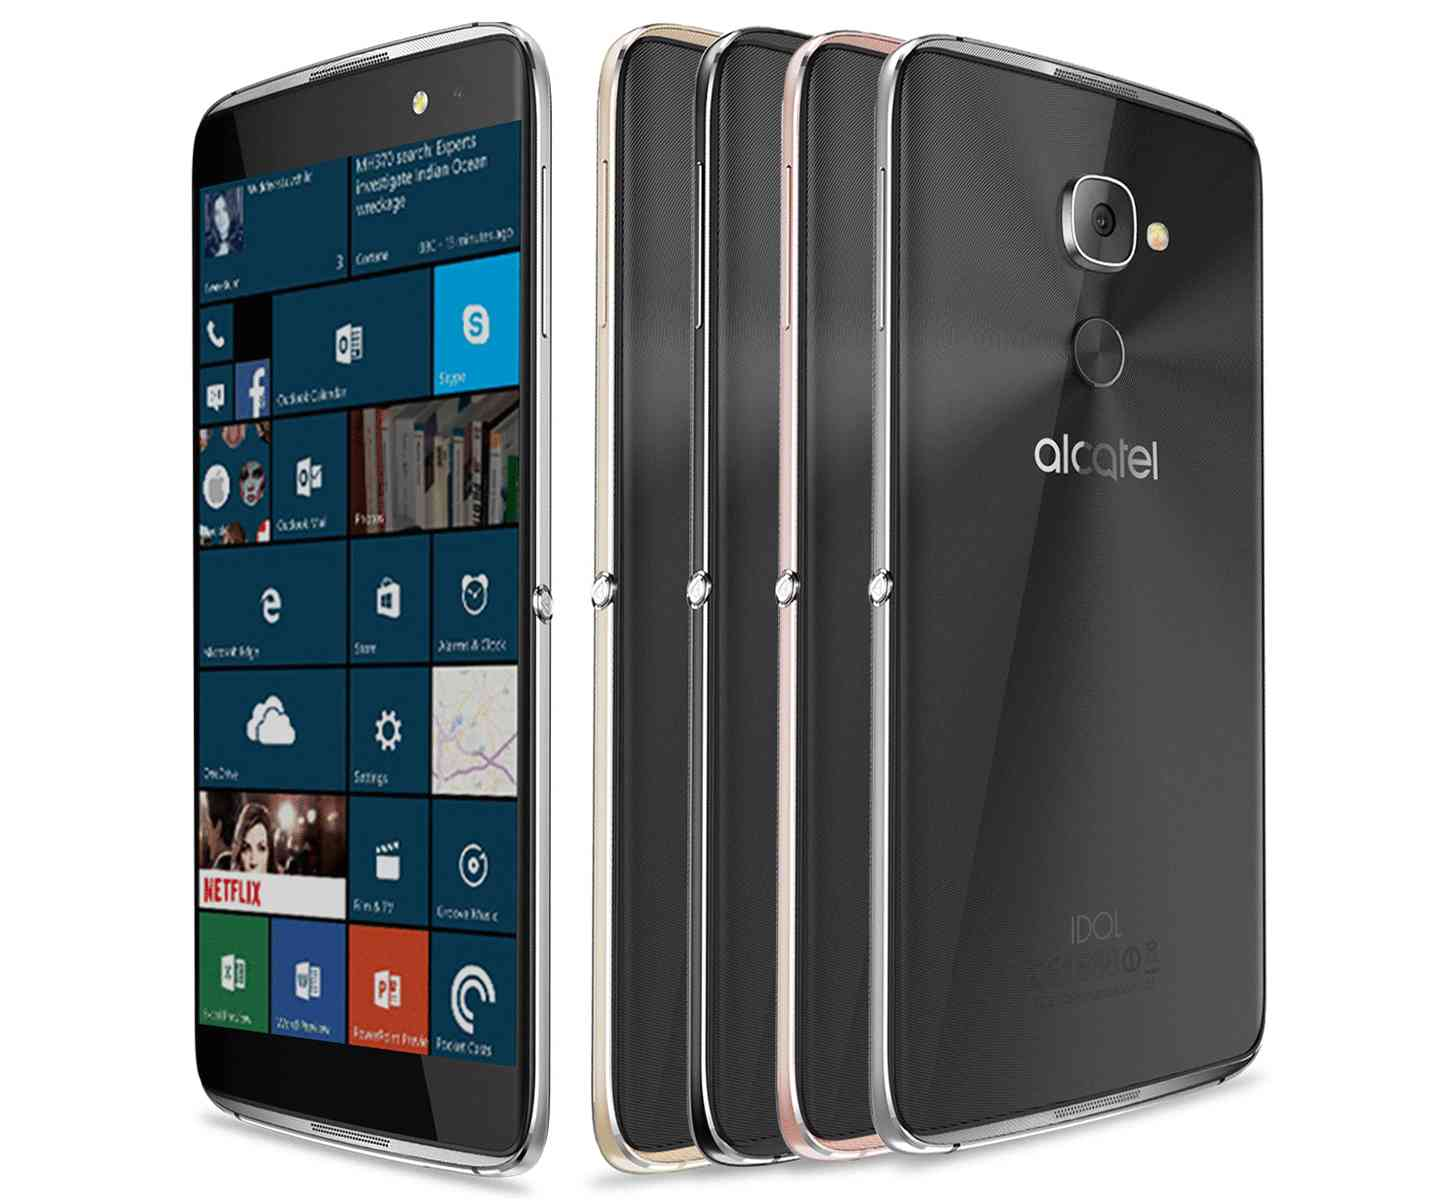 The Alcatel Idol 4S is now available in a Windows 10 flavor